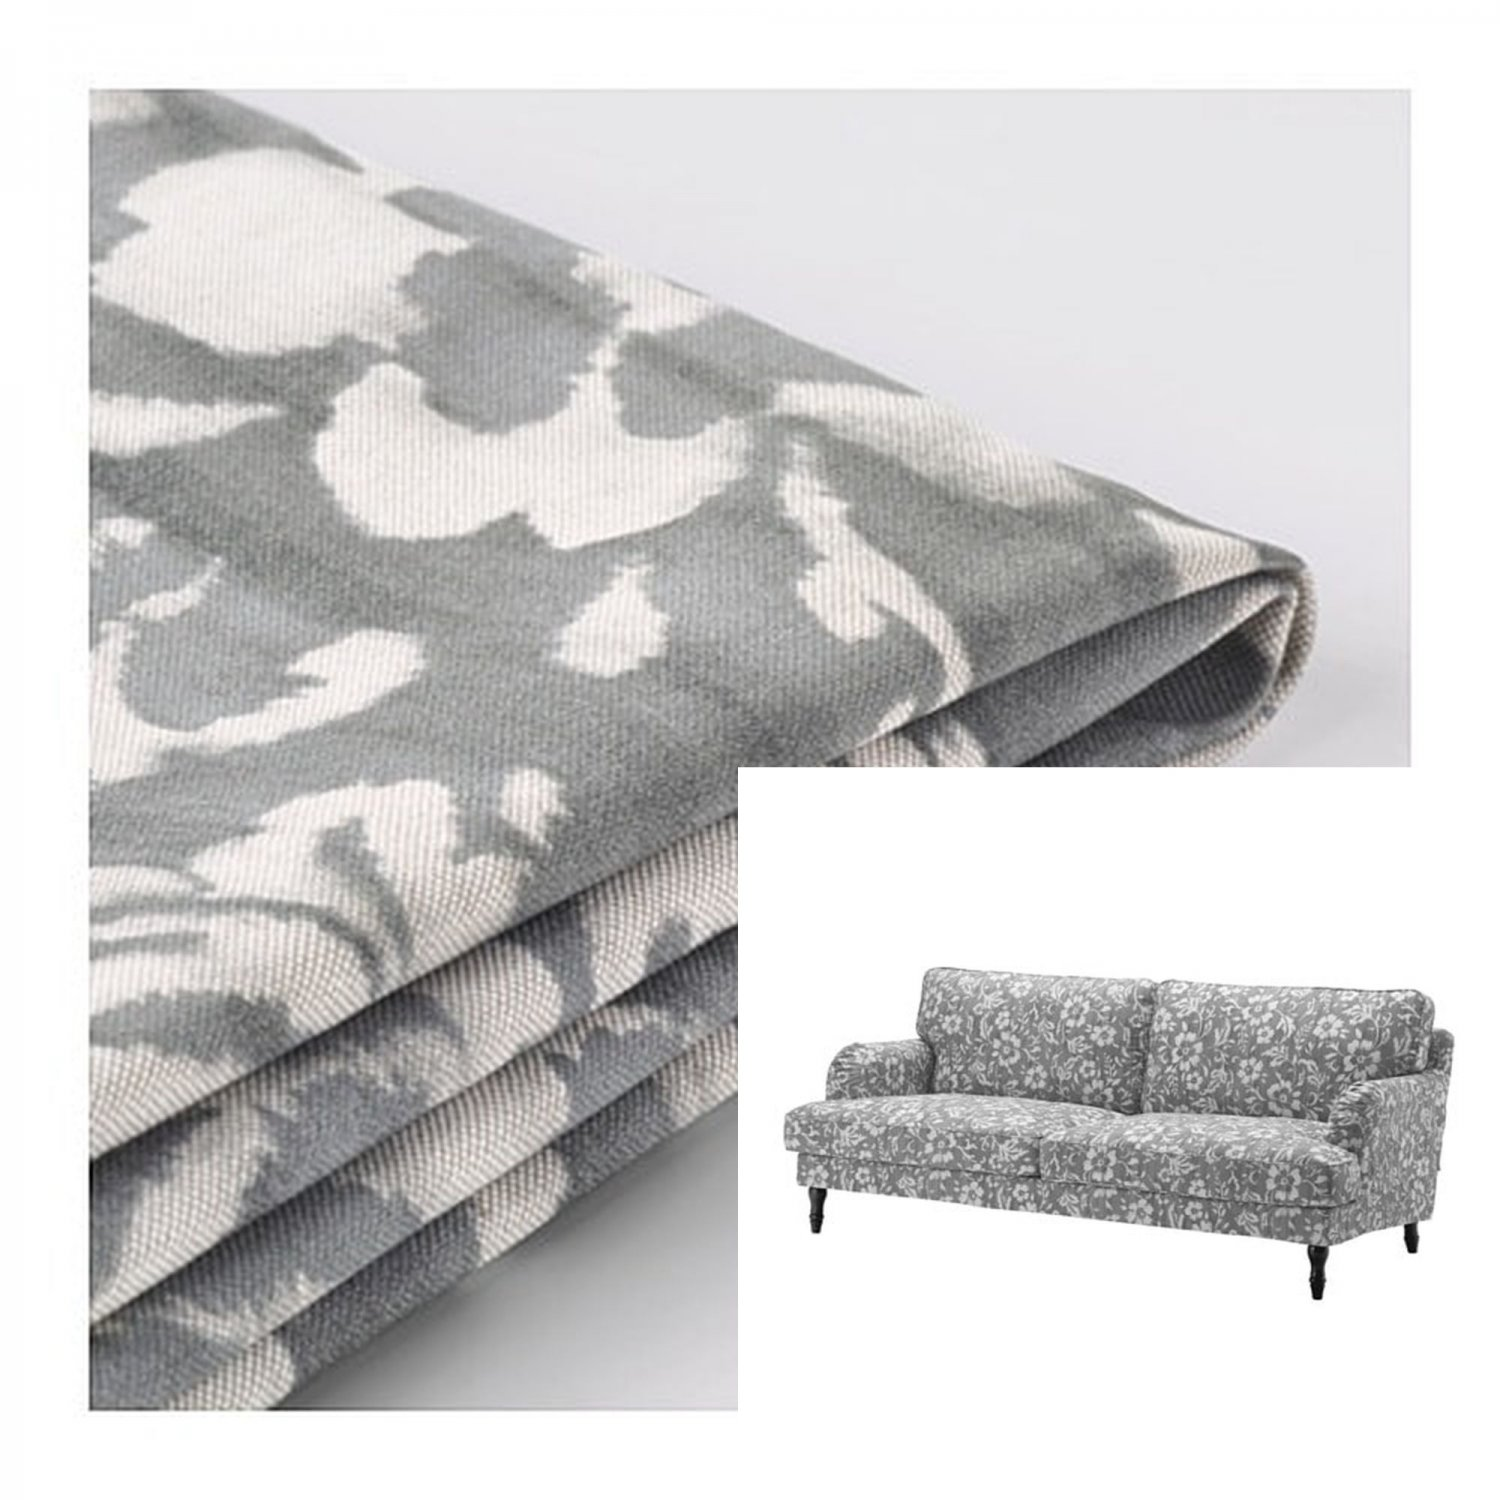 IKEA Stocksund 3 Seat Sofa SLIPCOVER Cover HOVSTEN Gray White Floral  Watercolour Effect Grey